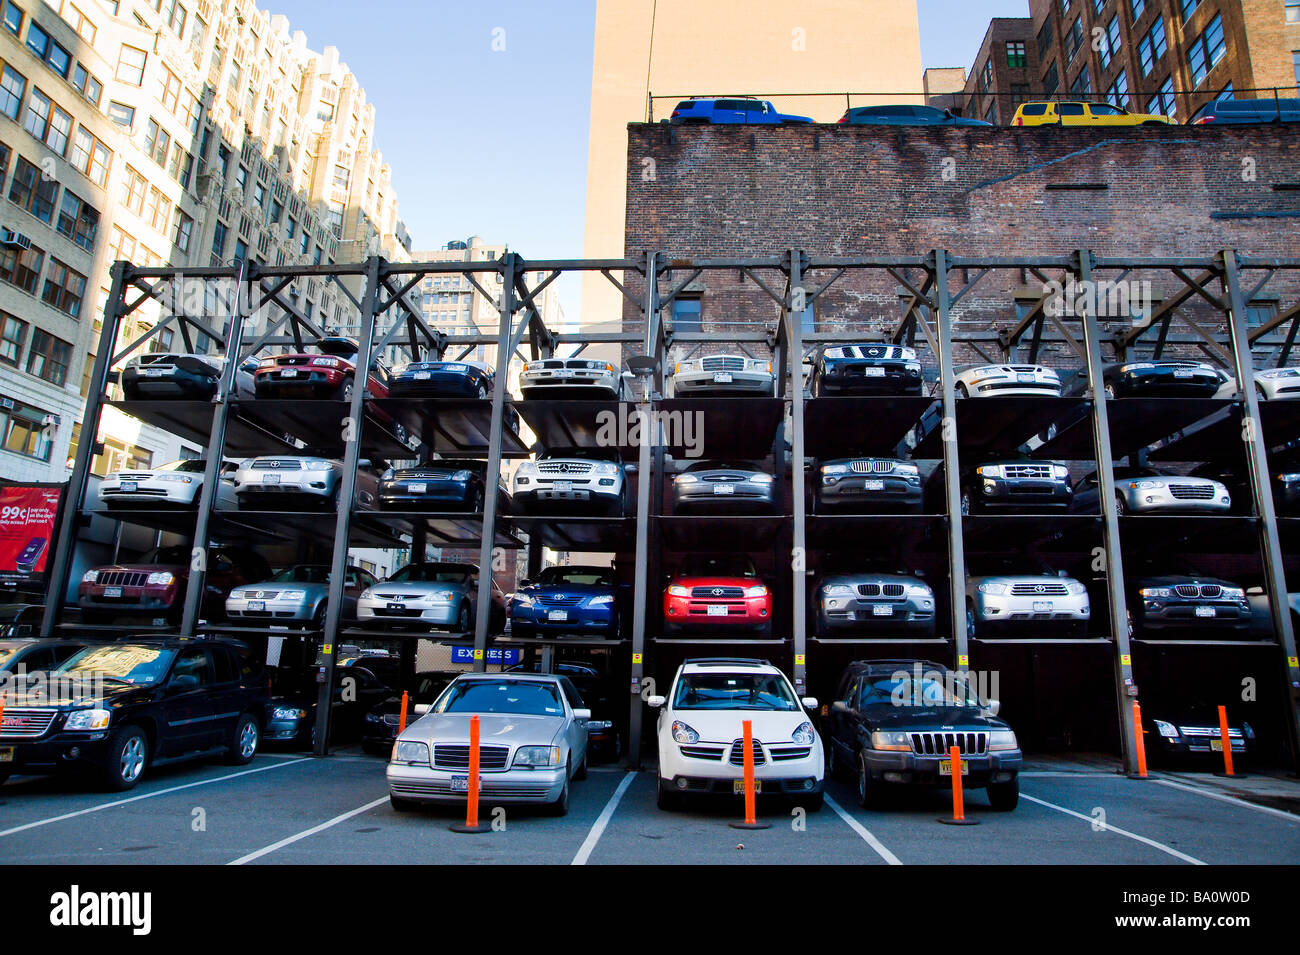 Multi Level Open Space Car Parking Stock Photo Royalty Free Image